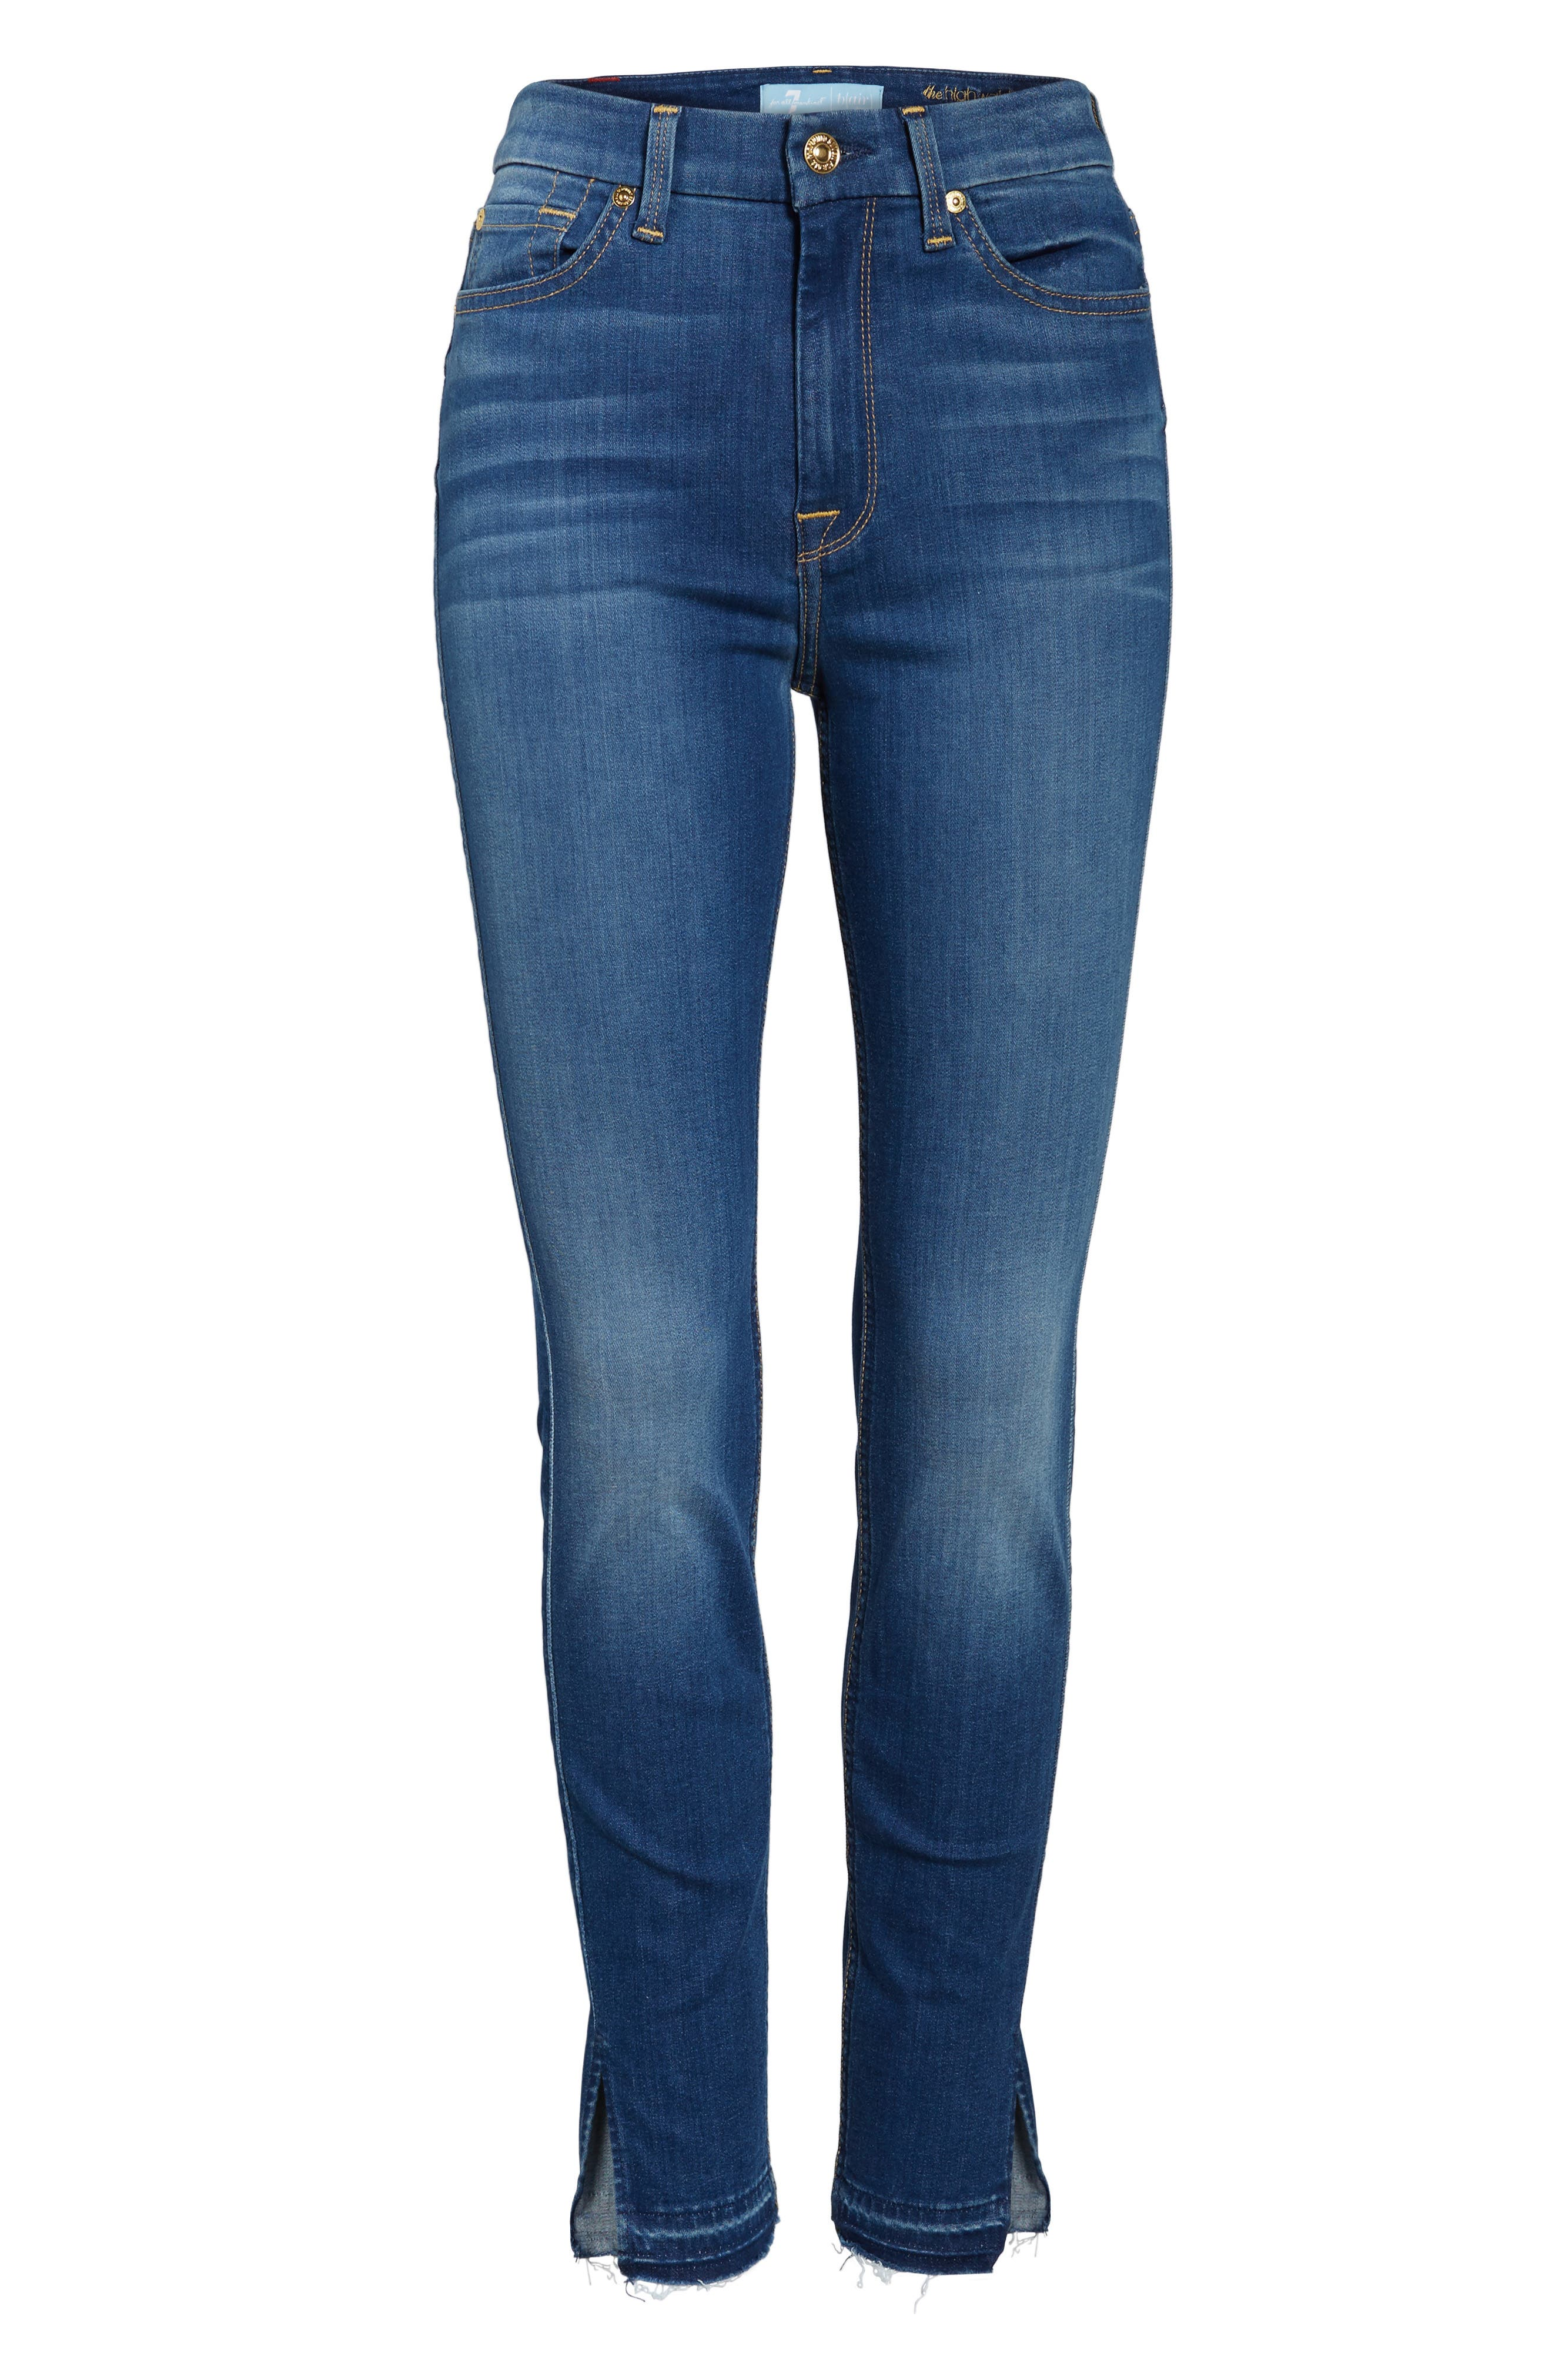 b(air) High Waist Split Hem Skinny Jeans,                             Alternate thumbnail 6, color,                             400